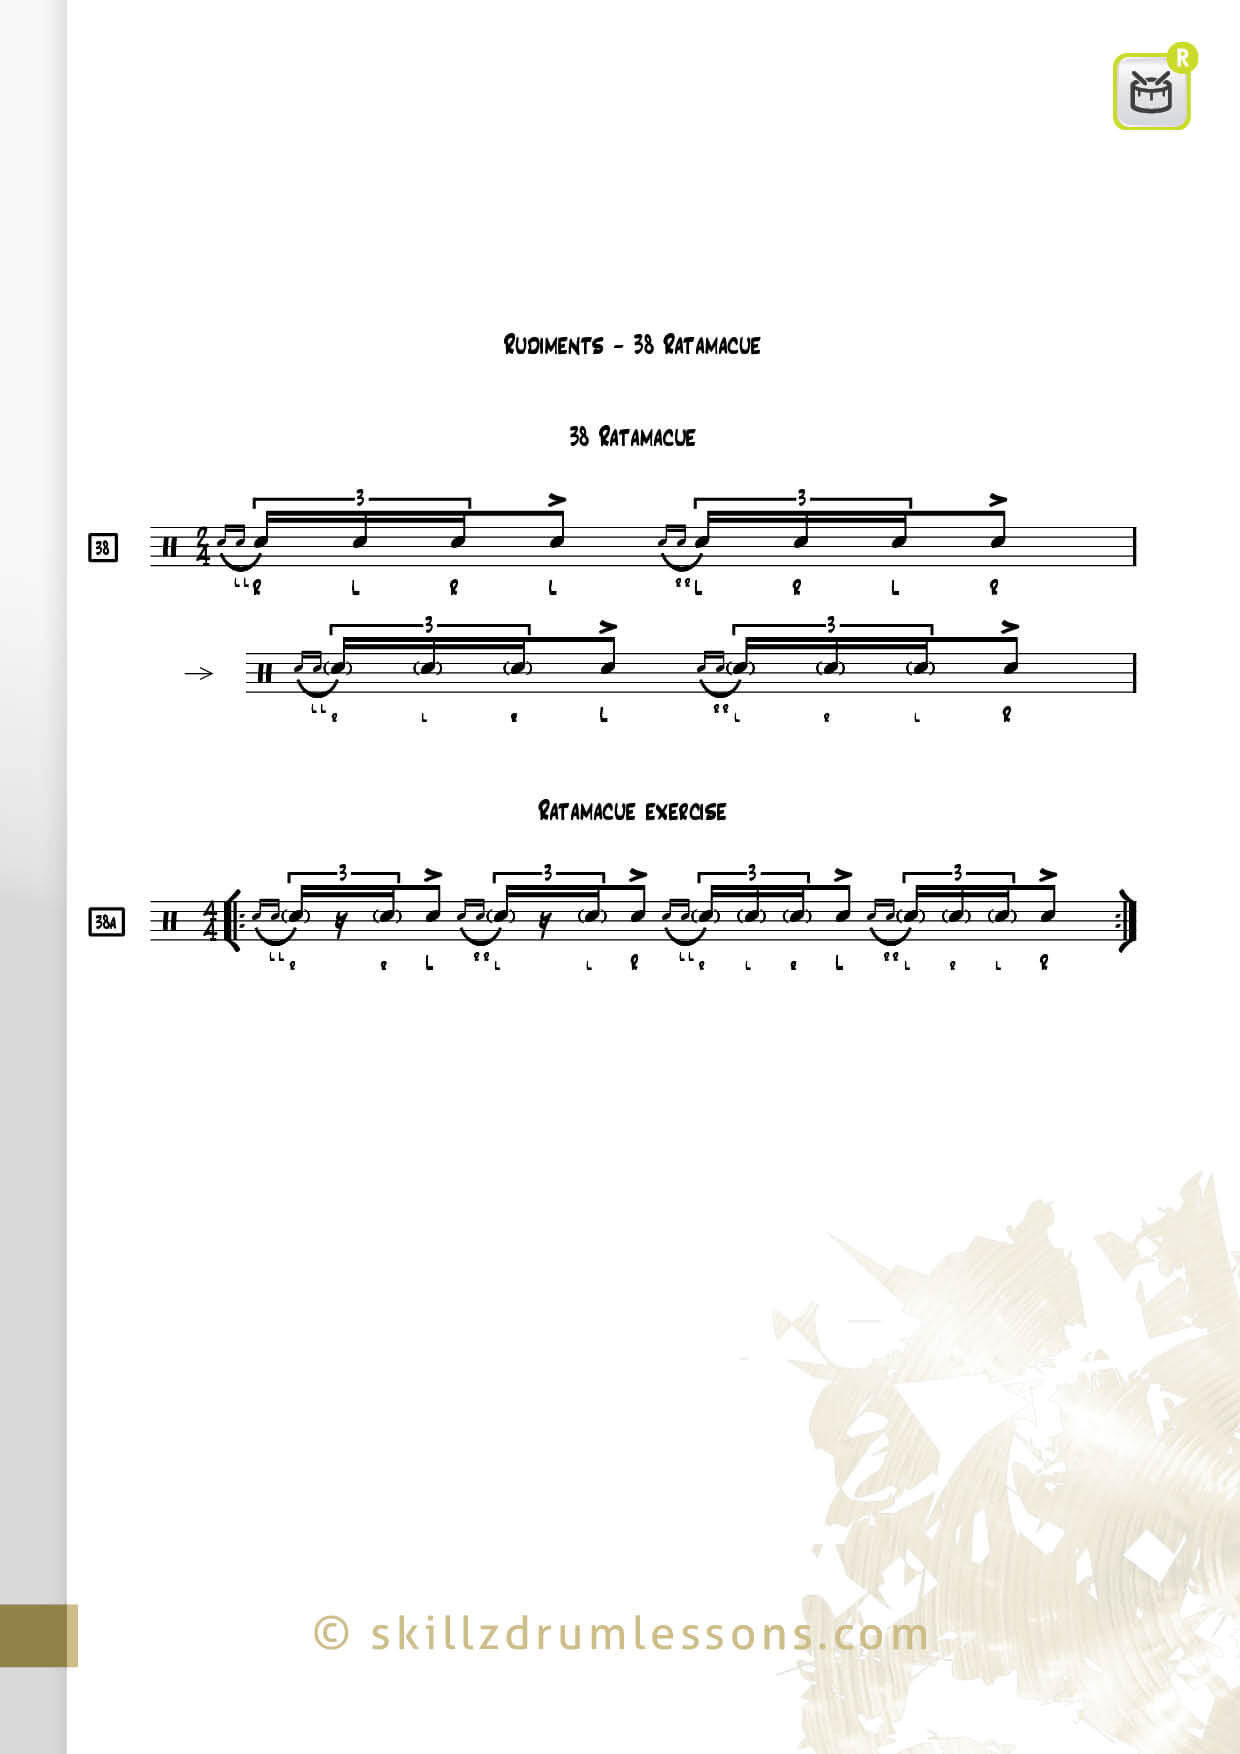 This is an image of the Official 40 Essential P.A.S. Rudiments #38 The Ratamacue by Skillz Drum Lessons